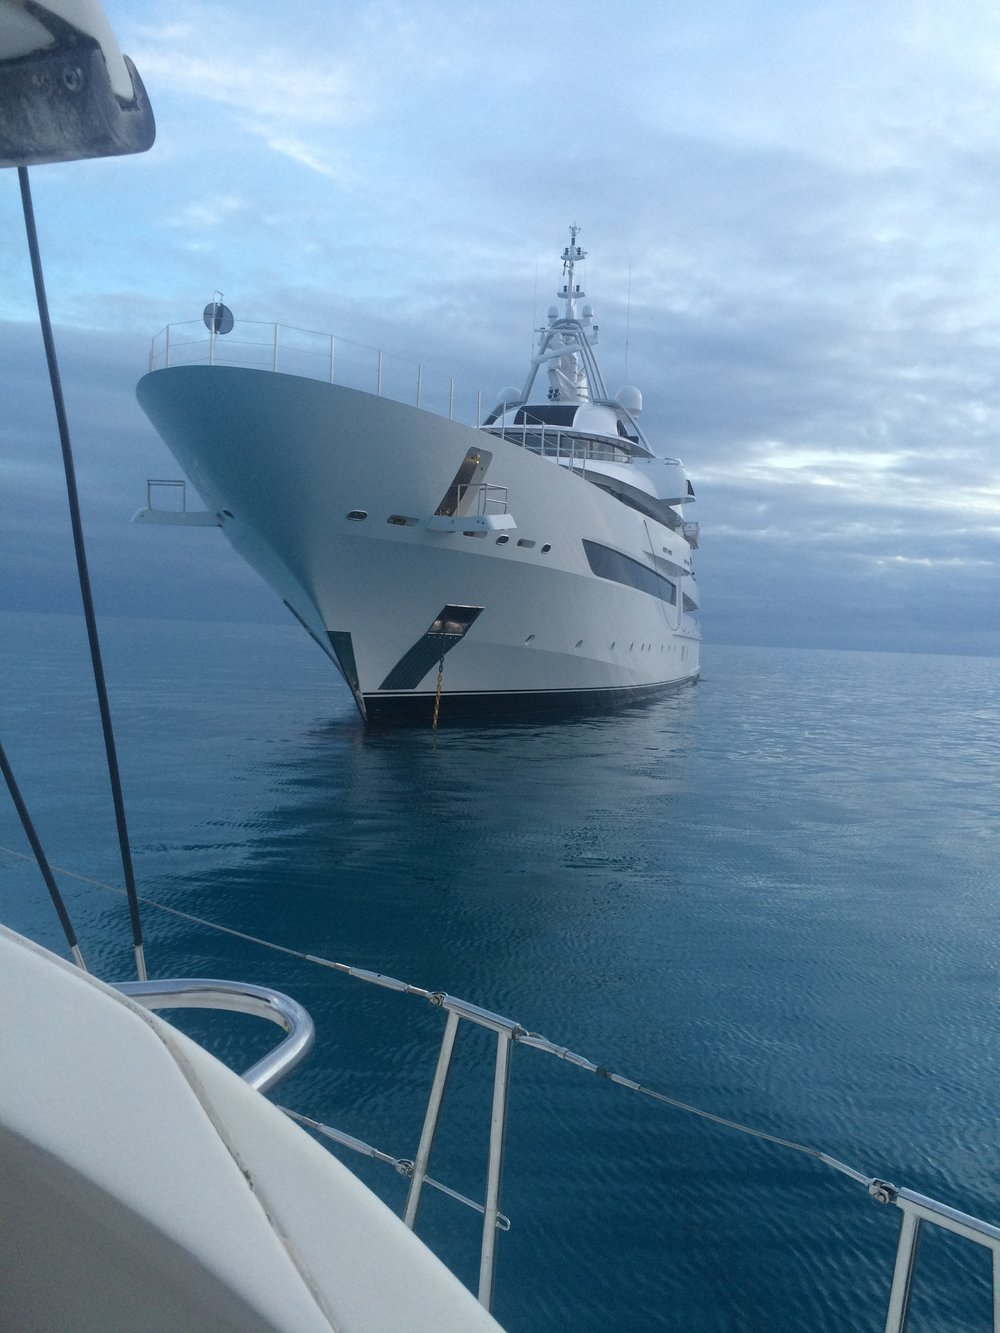 A luxury yacht anchored a couple miles south of New Providence during a calm sea.